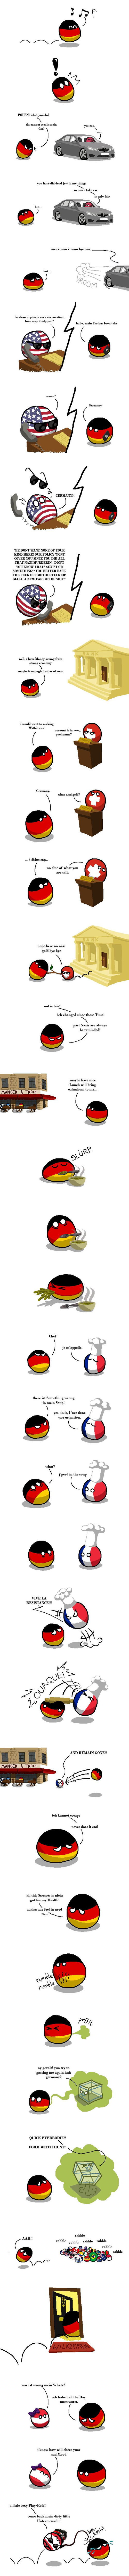 A Constant Reminder ( Germany, poland, USA, Swiss, France, Israel, Austria ) by arrz  #polandball #countryball